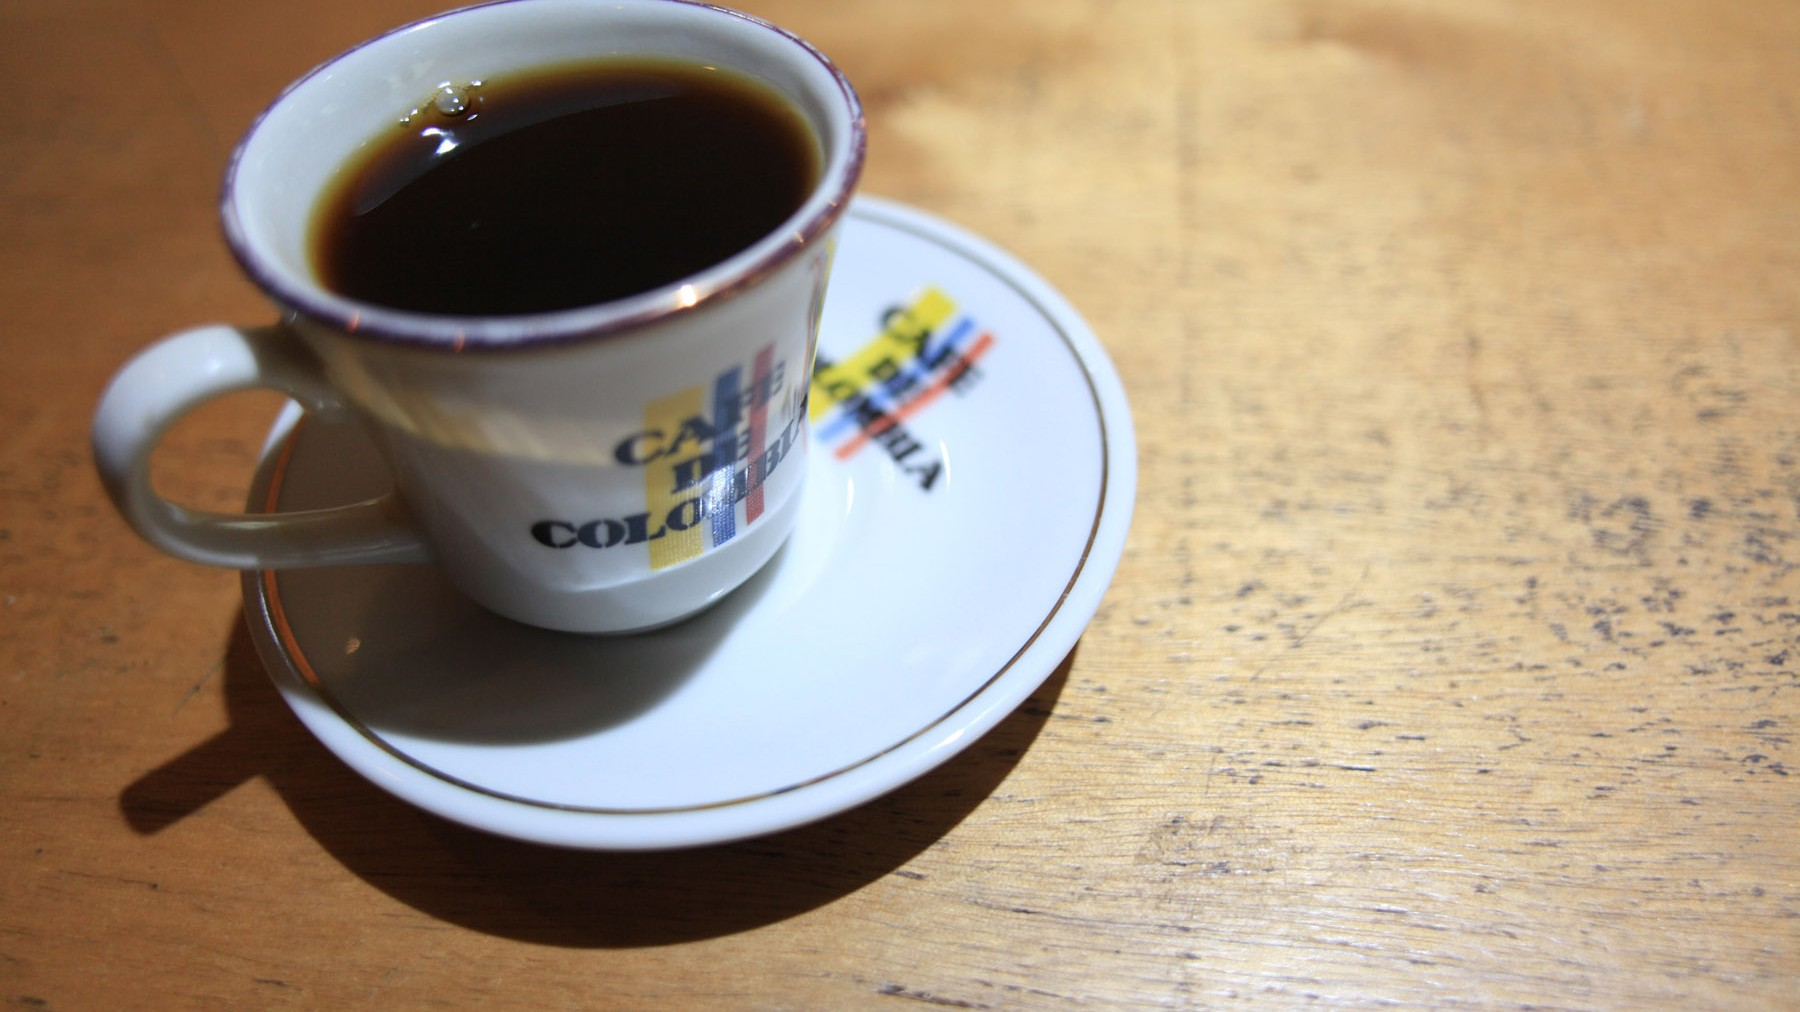 colombiancoffee_IMG_1829